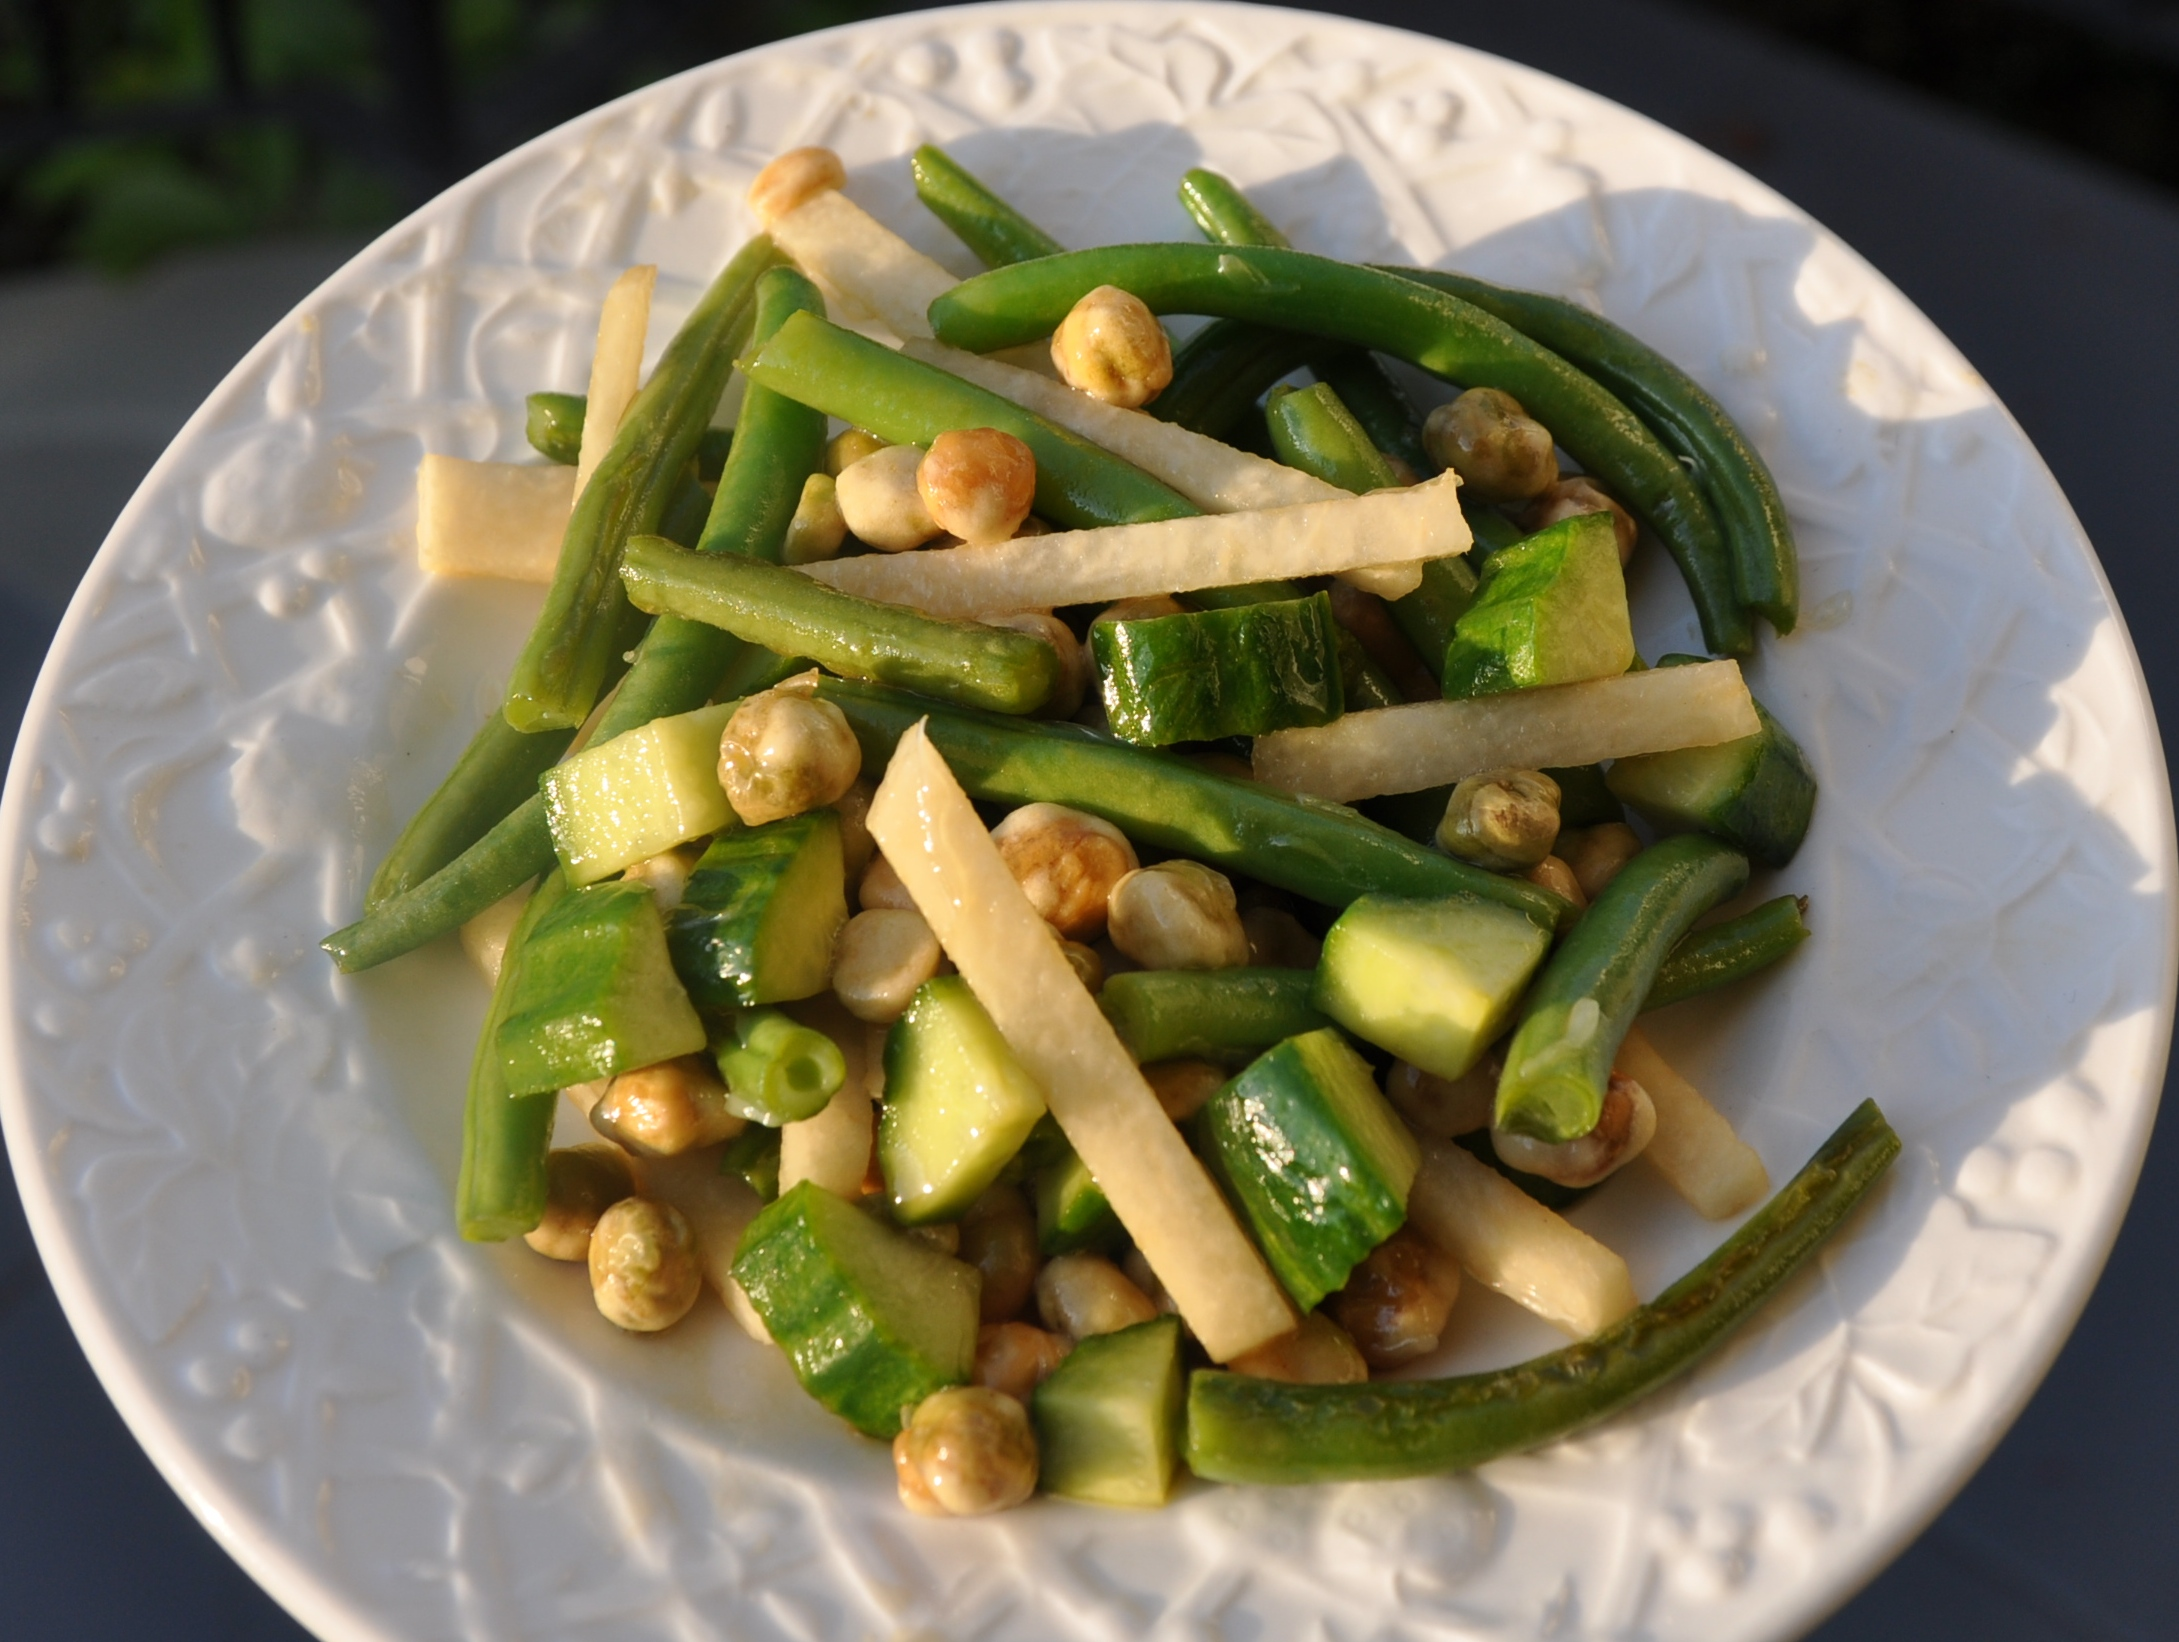 Crunchy Green Bean Salad